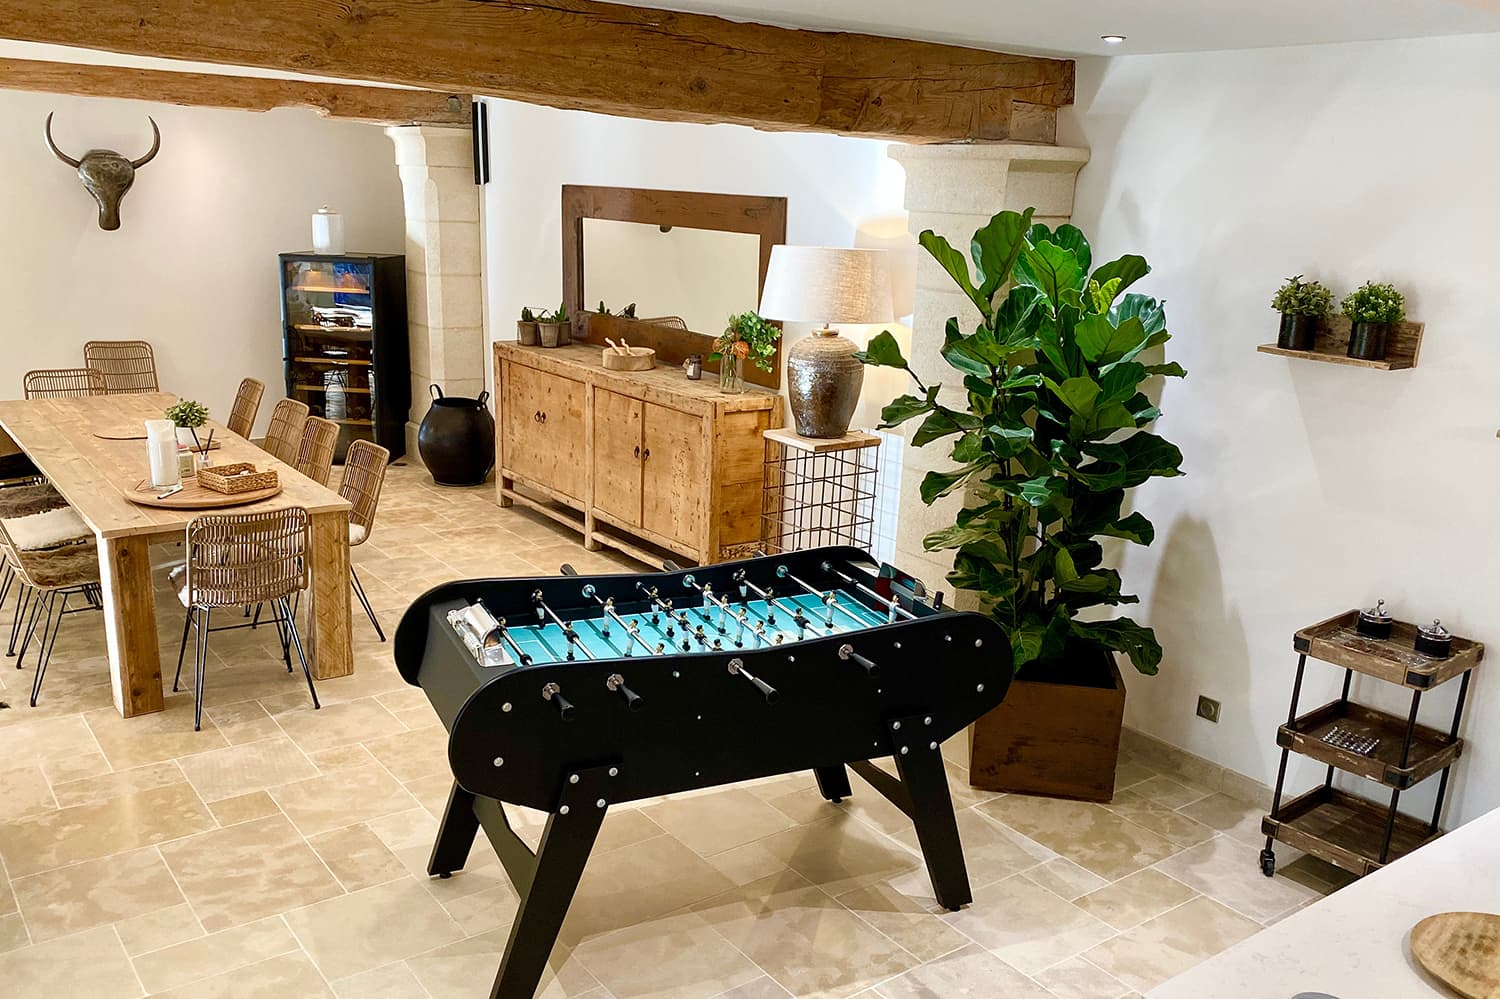 Dining room with table football in Provence-Alpes-Côte d'Azur holiday home